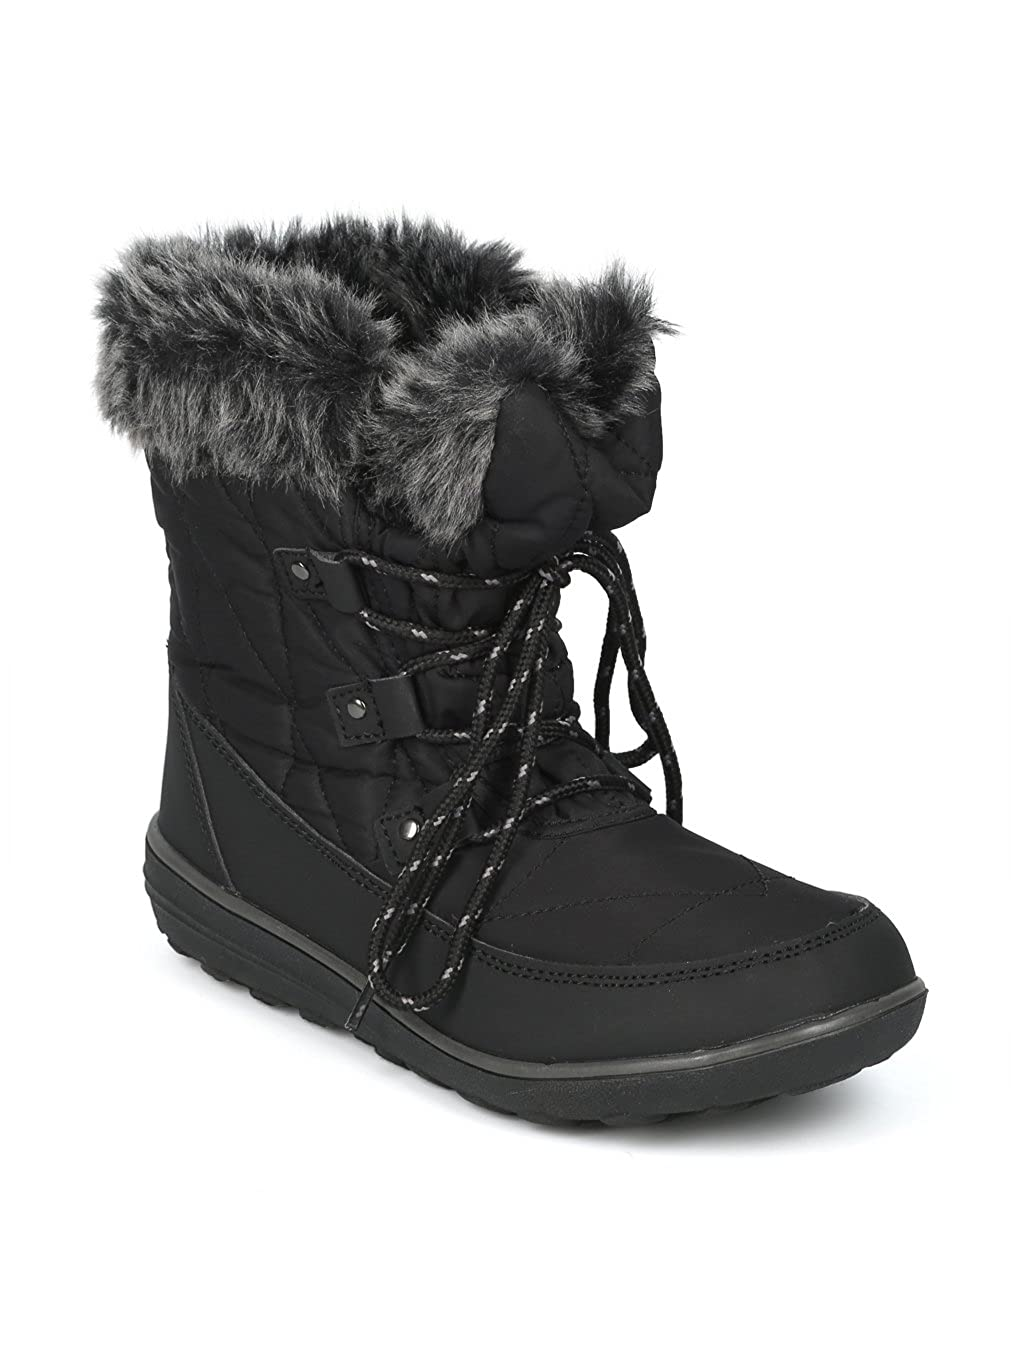 Alrisco Faux Fur Trim Lace Up Outdoor Winter Boot HG06